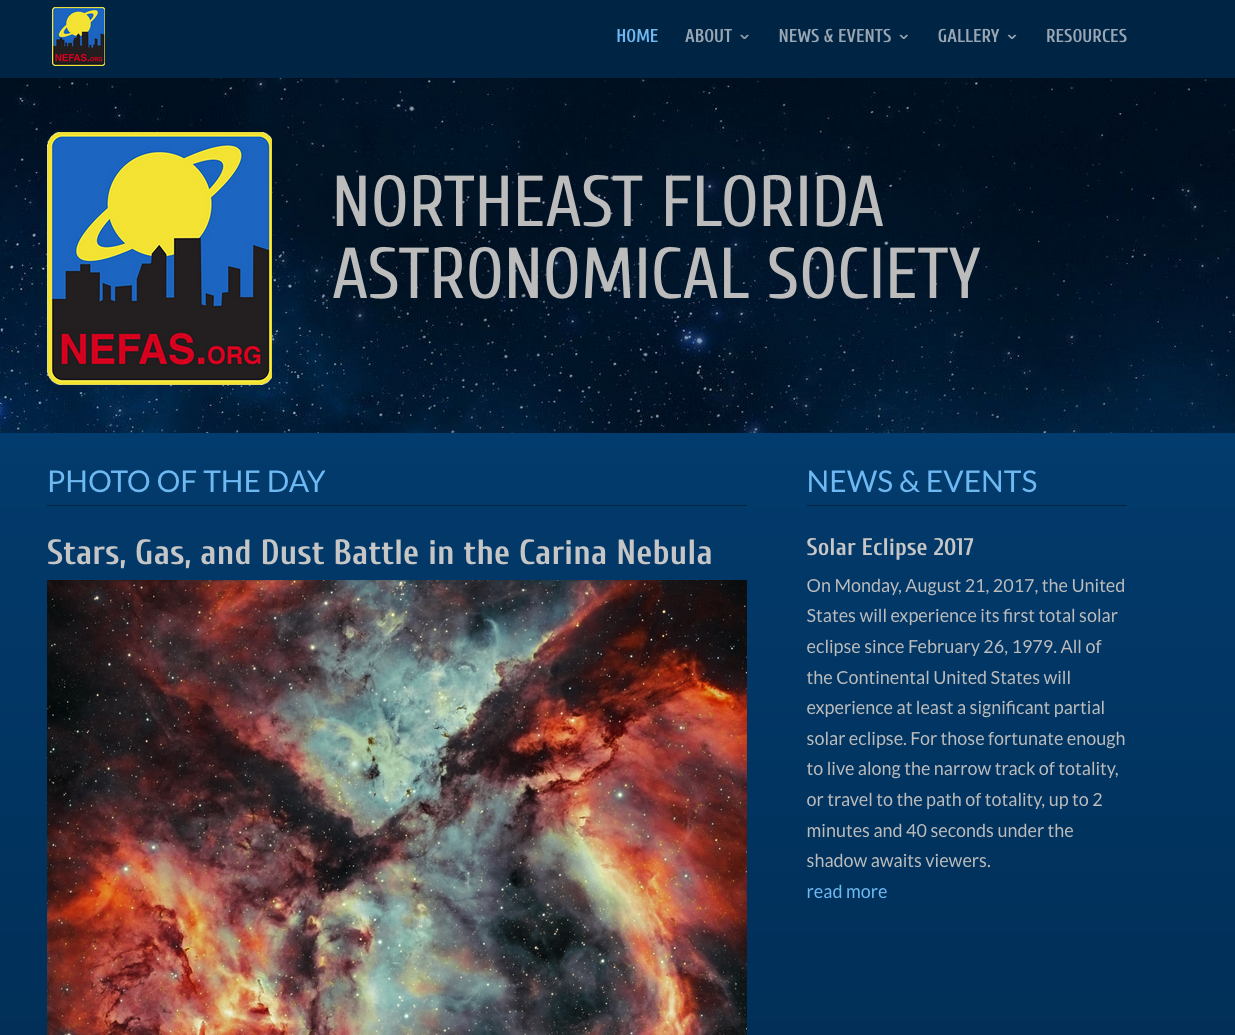 Northeast Florida Astronomical Society